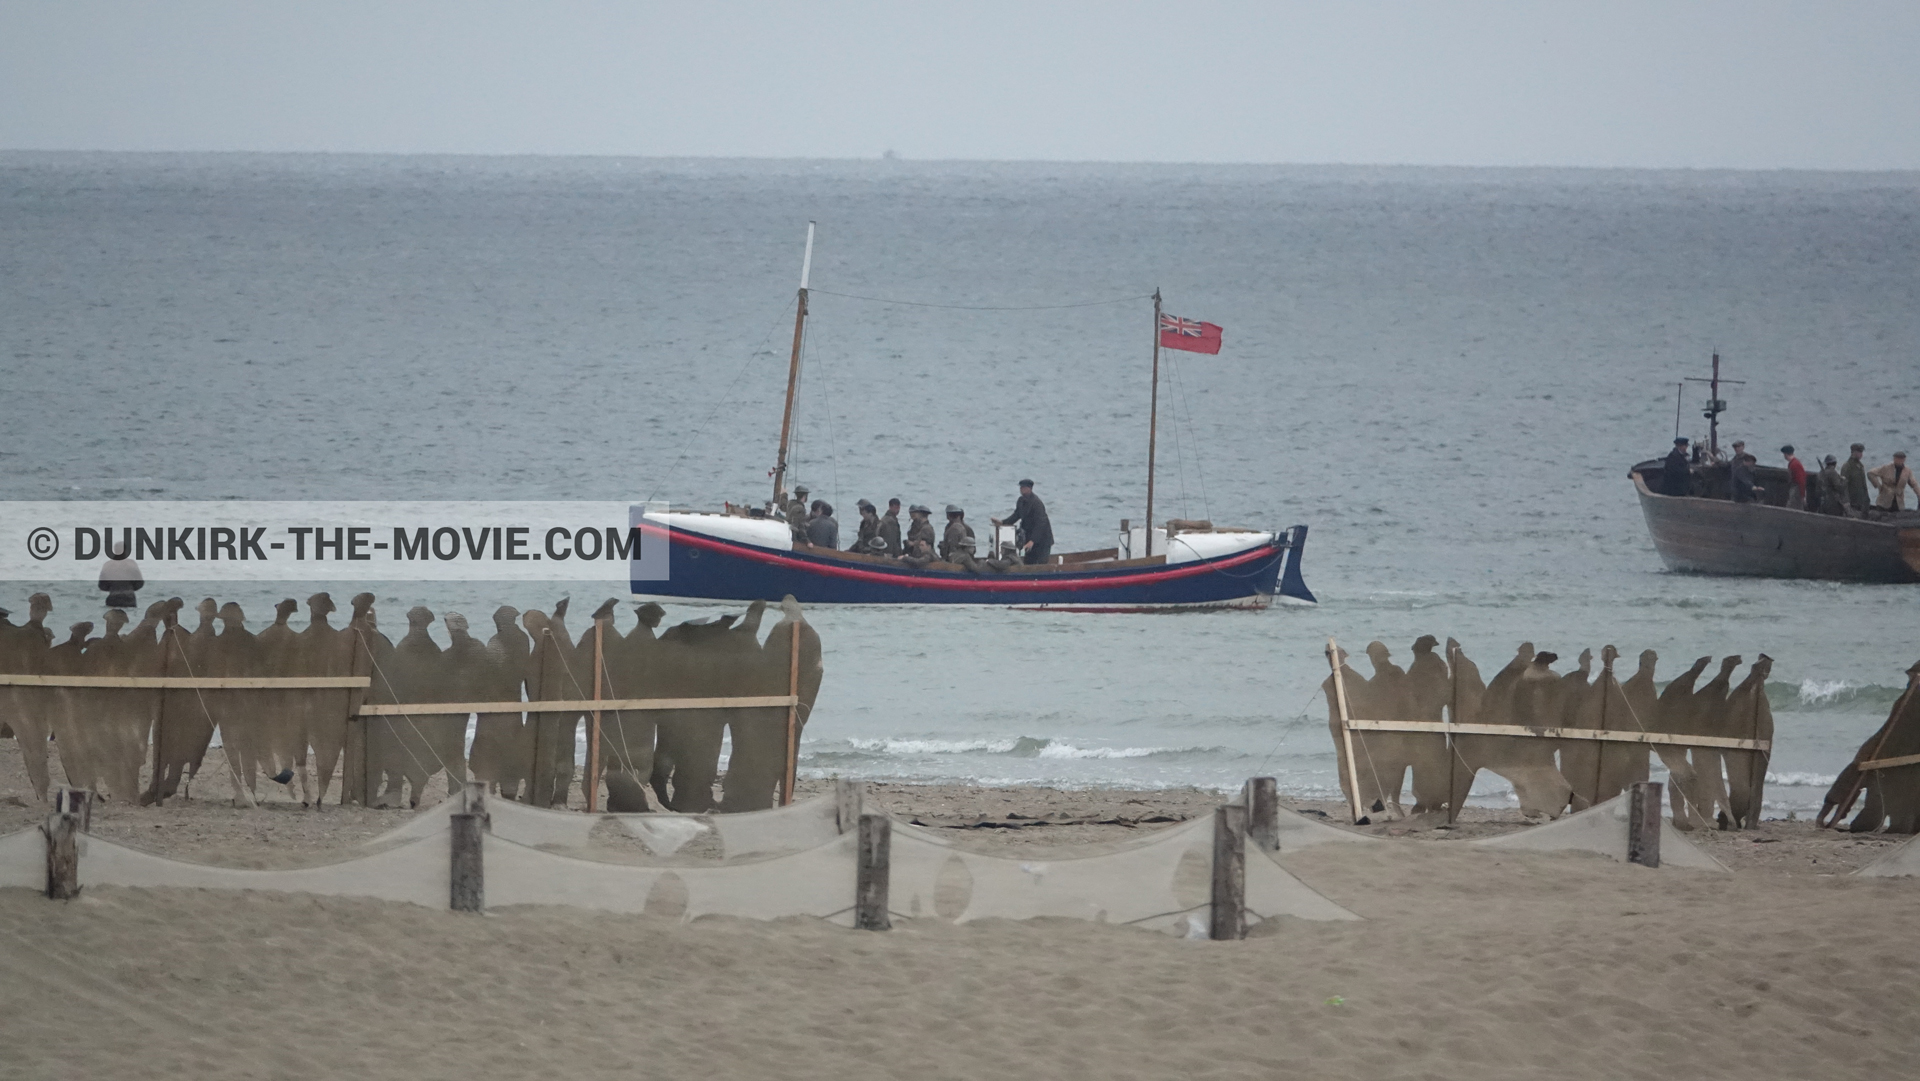 Picture with boat, decor, supernumeraries, beach, Henry Finlay lifeboat,  from behind the scene of the Dunkirk movie by Nolan